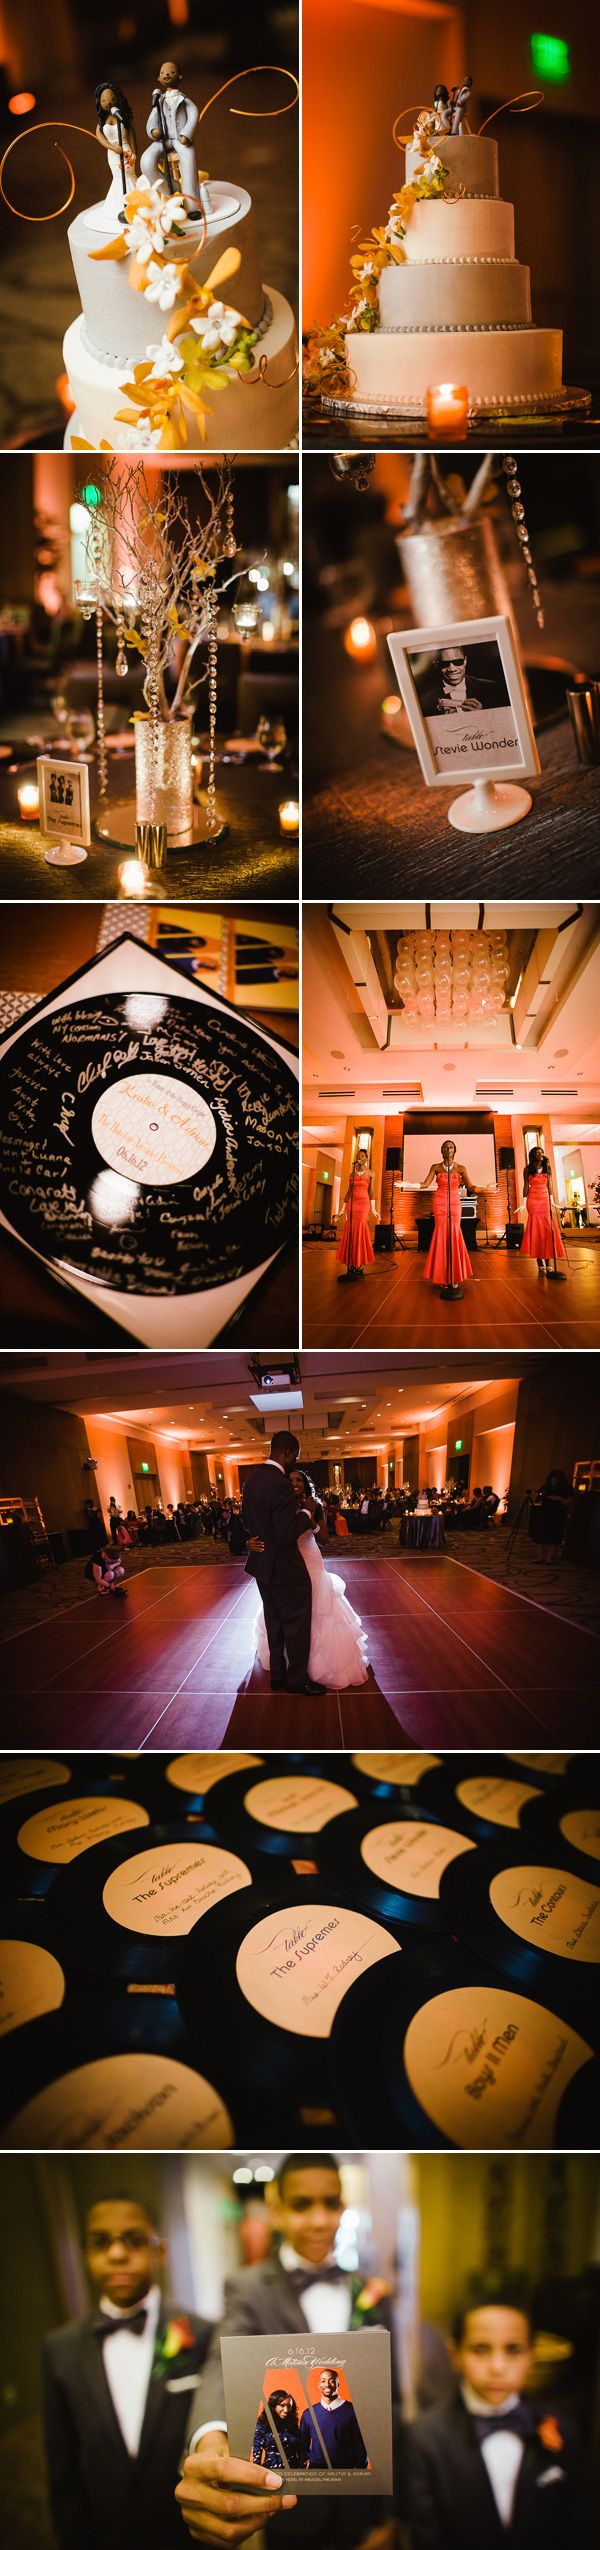 yesssss. Motown inspired. Pics of a wedding but table idea is so cooool and the decorations are great